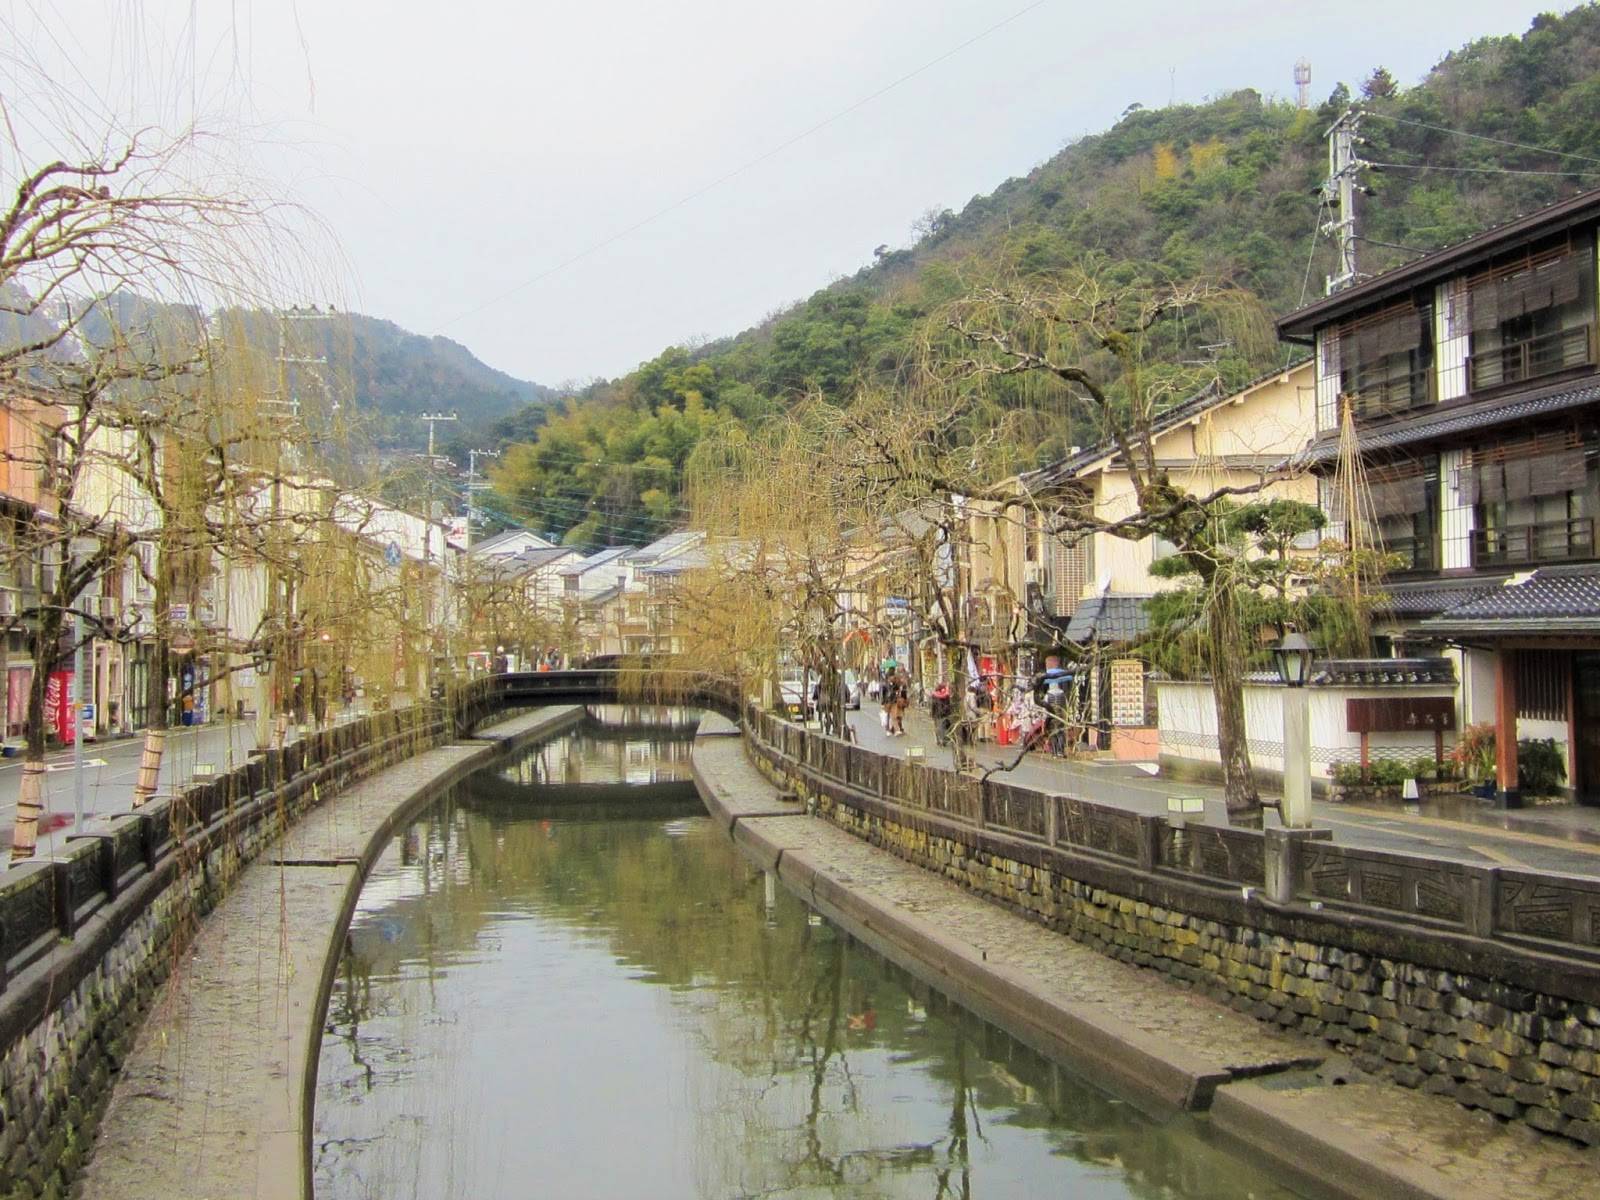 Kinosaki Onsen Is Located At The Northern End Of Hyogo Prefecture 兵庫県 Which Not Exactly Near Osaka Kobe City But Many Visitors To Kansai